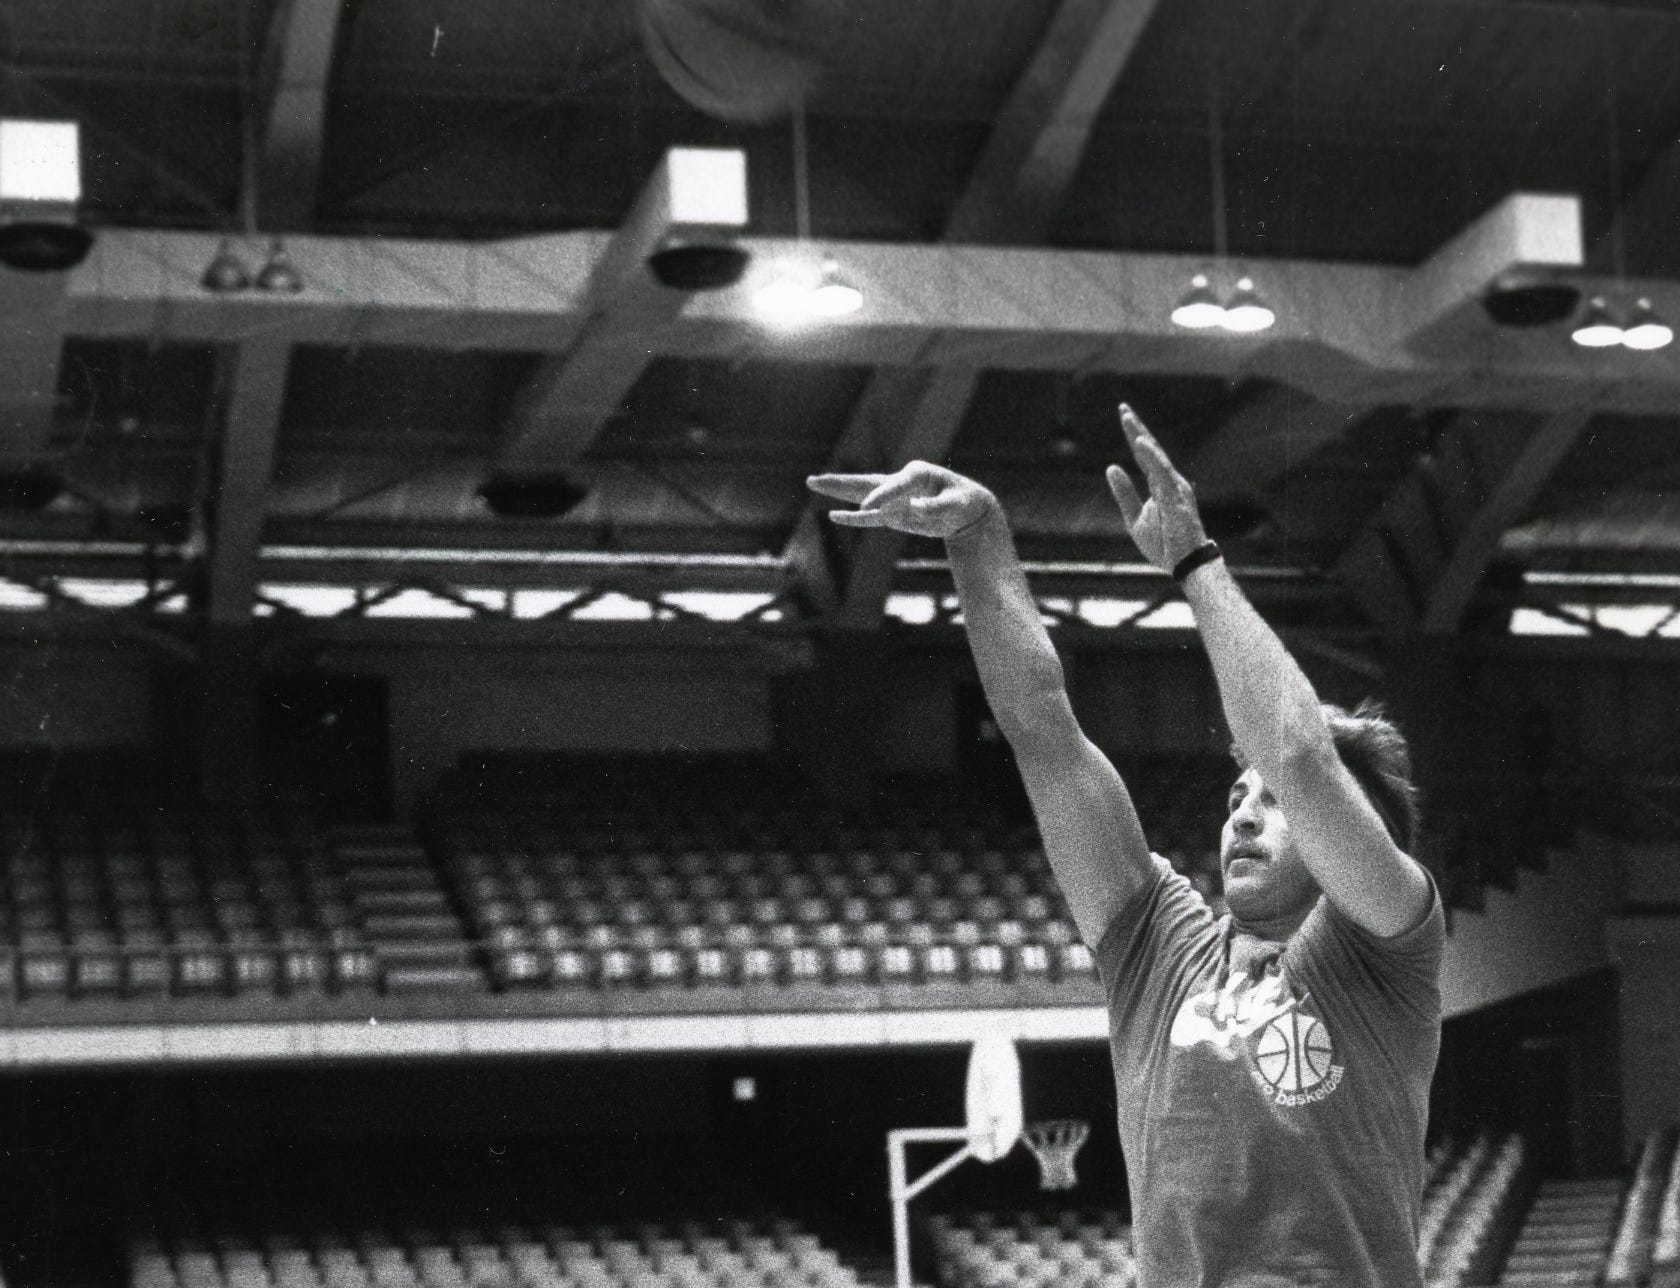 Former Vol Ernie Grunfeld at the UT Camp of Champions, June, 1981.